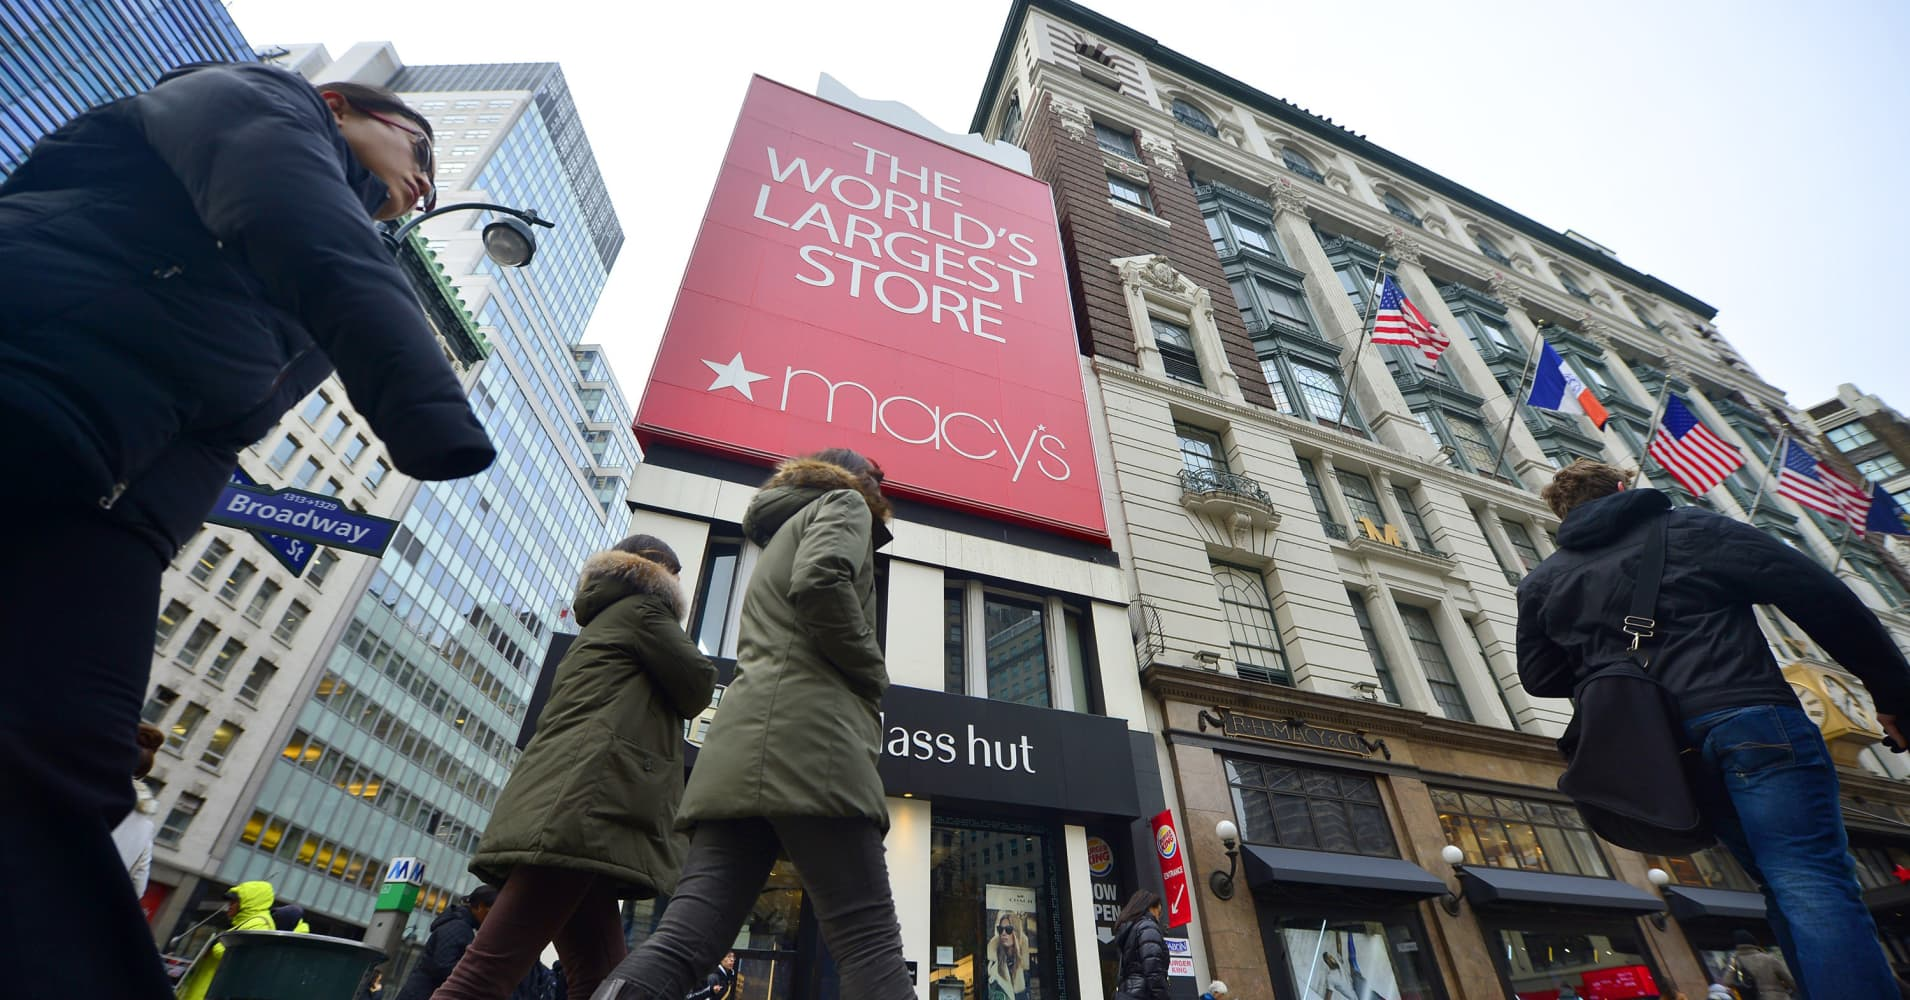 Macy's shares rise 2 percent on report retailer may build office tower on top of flagship New York store